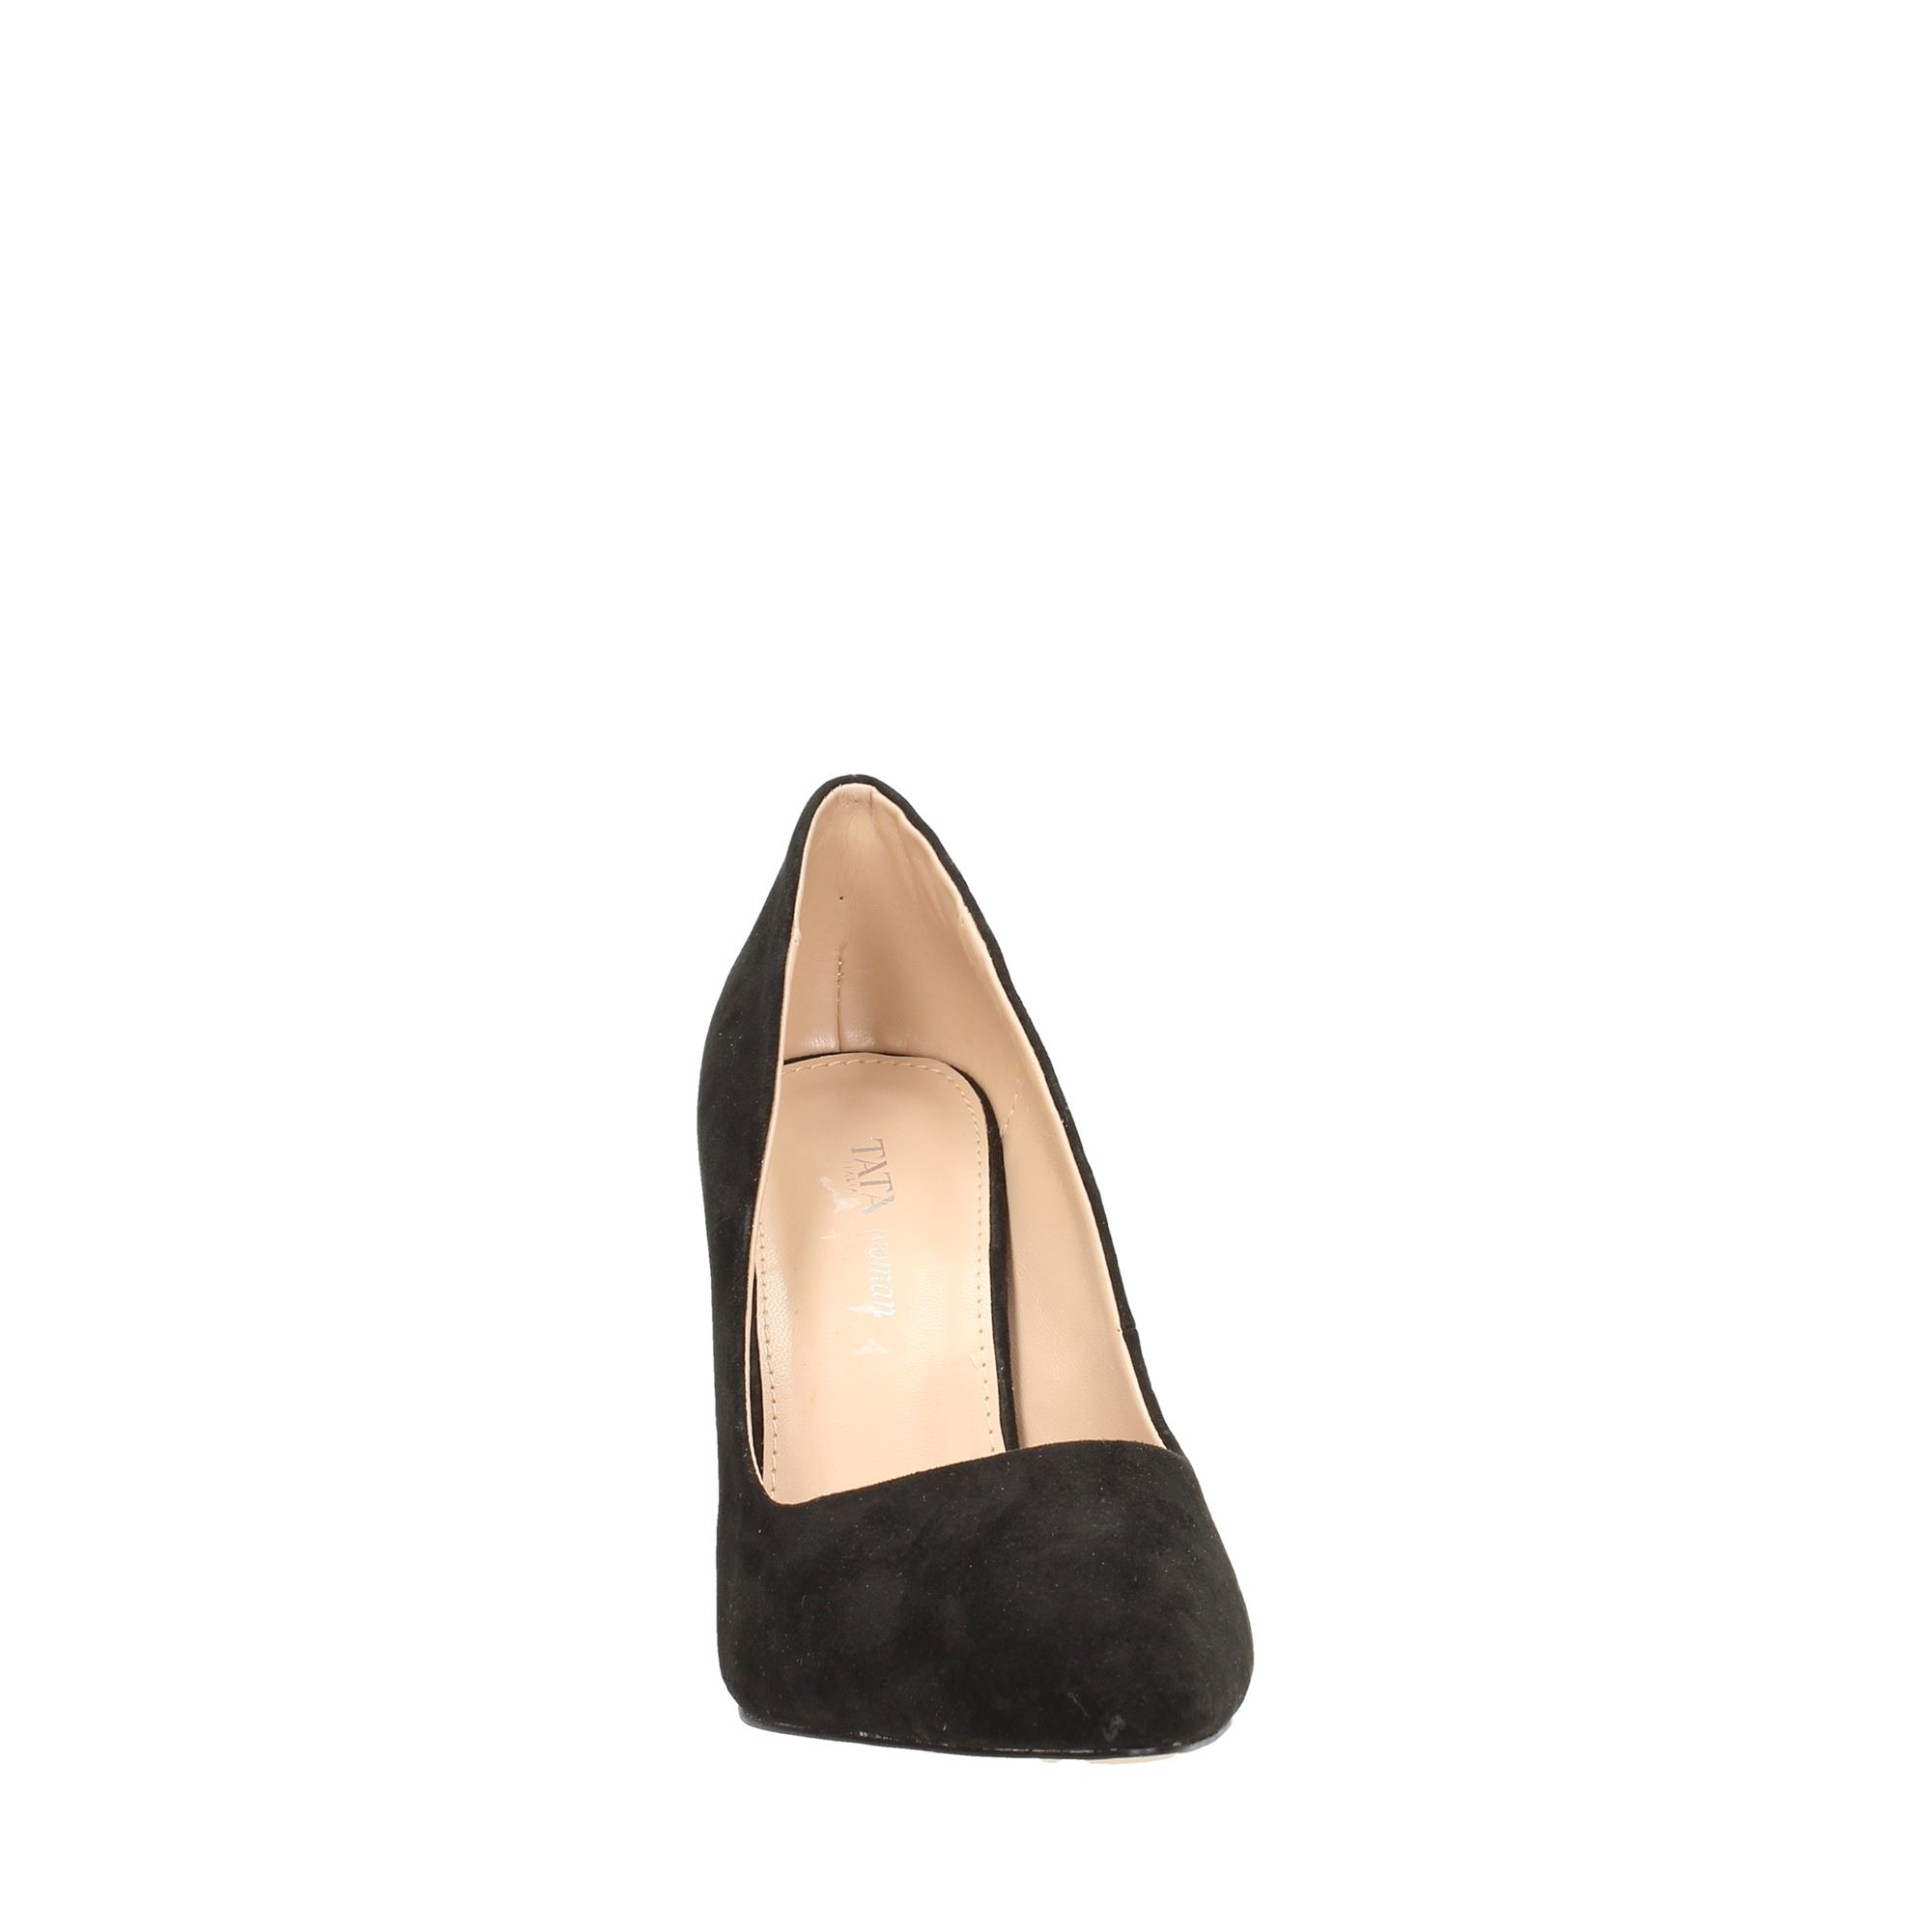 Tata Italia Shoes Woman Décolleté Black DW701A-16